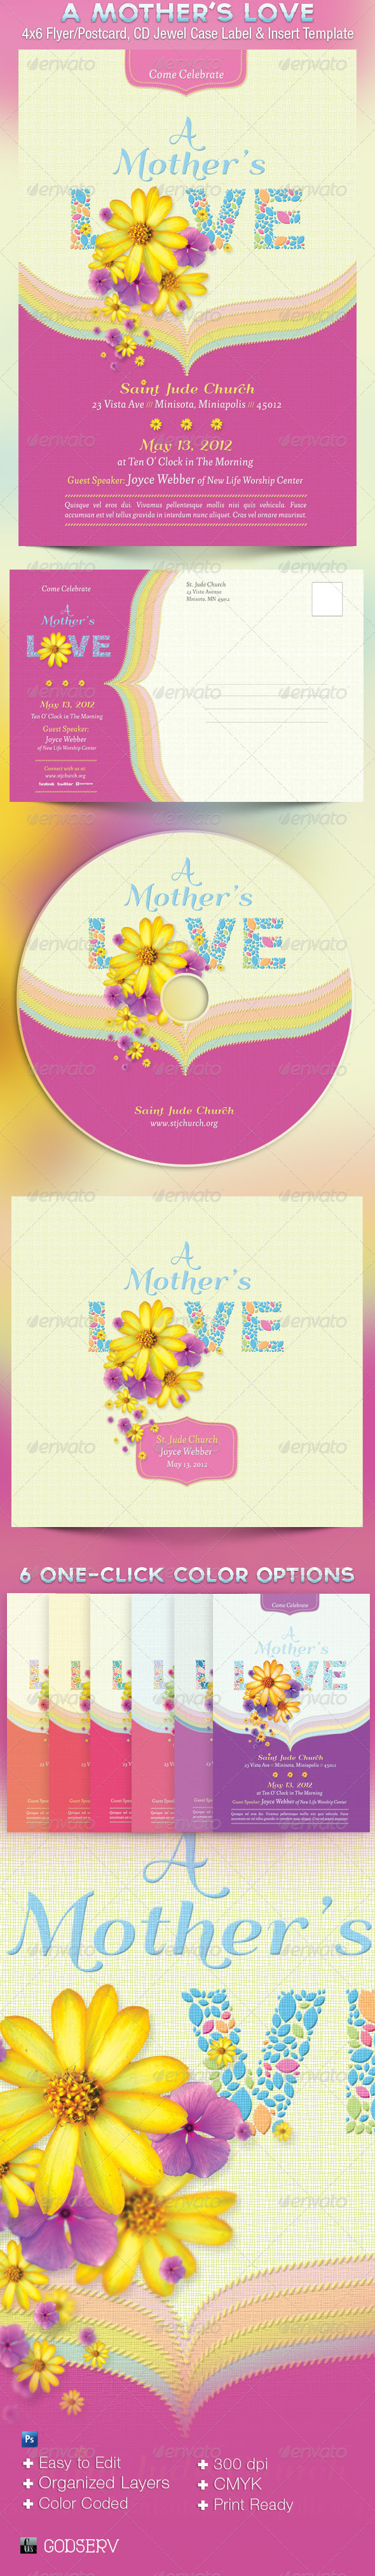 A Mother's Love Flyer, Postcard and CD Template - Church Flyers